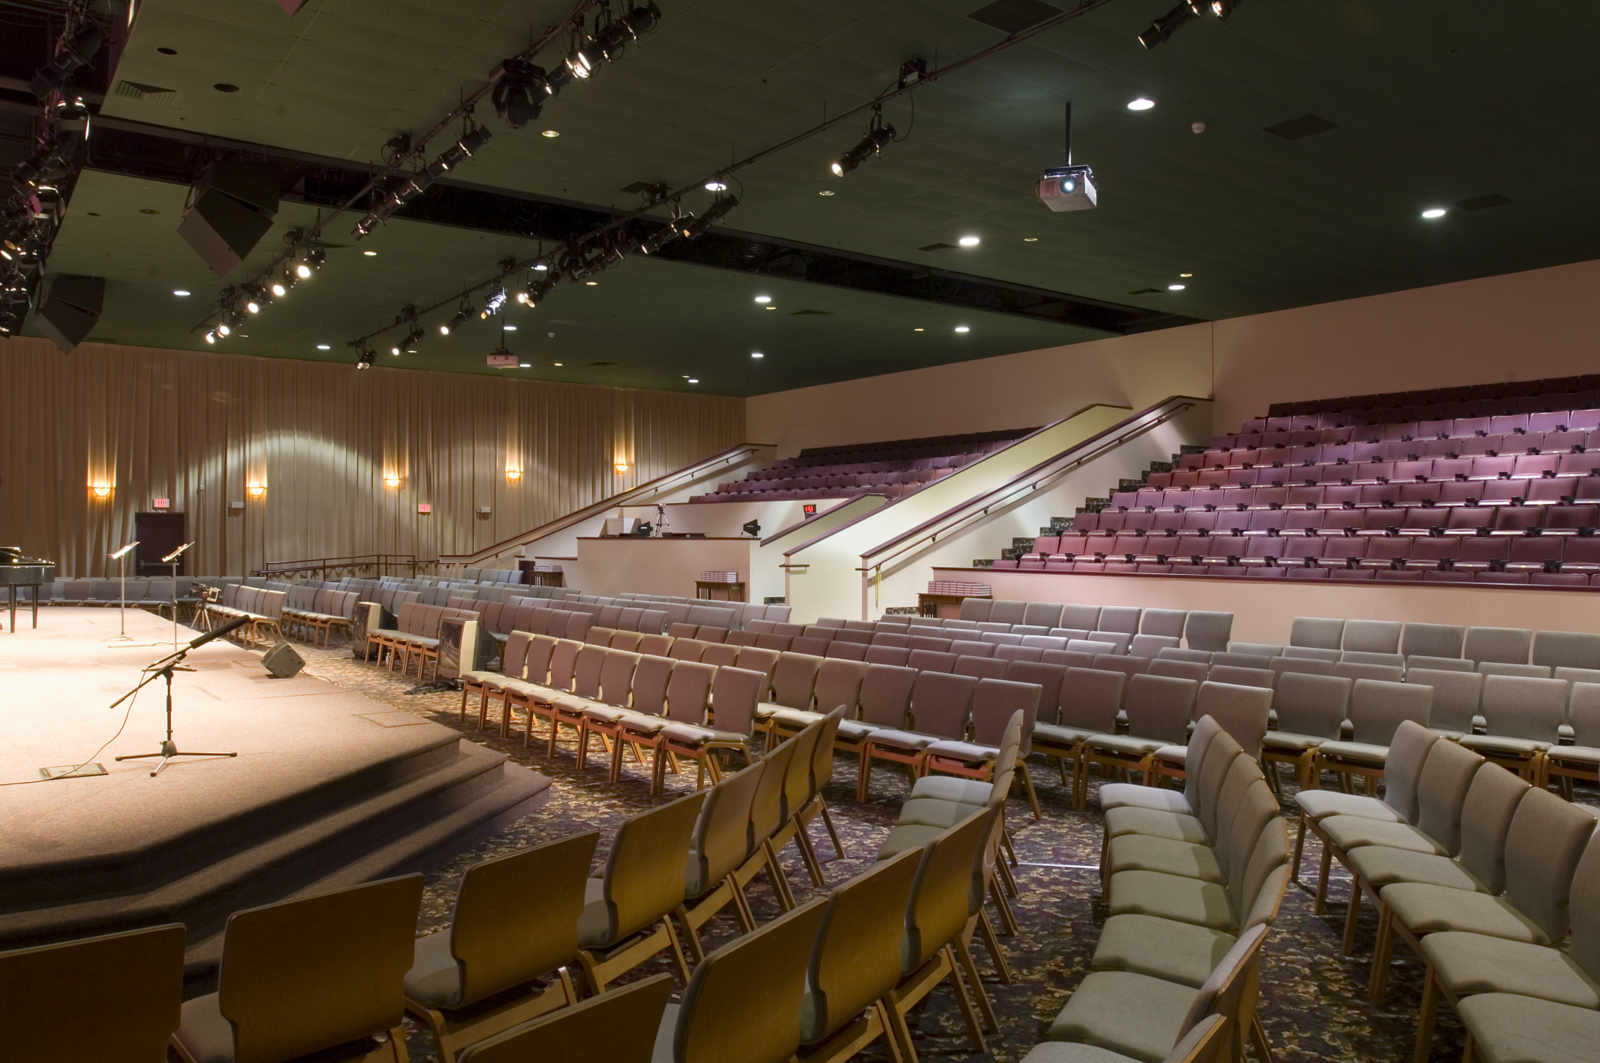 a very unique adaptive reuse, bethel, the church at franklin mills, occupies a former multi-plex cinema. this phase 1 auditorium combined two theaters to create a600 seat phase 1. two more vacant theaters on either side will providean additional 600 seats in a semi-circle arrangement for a total capacity of1,200